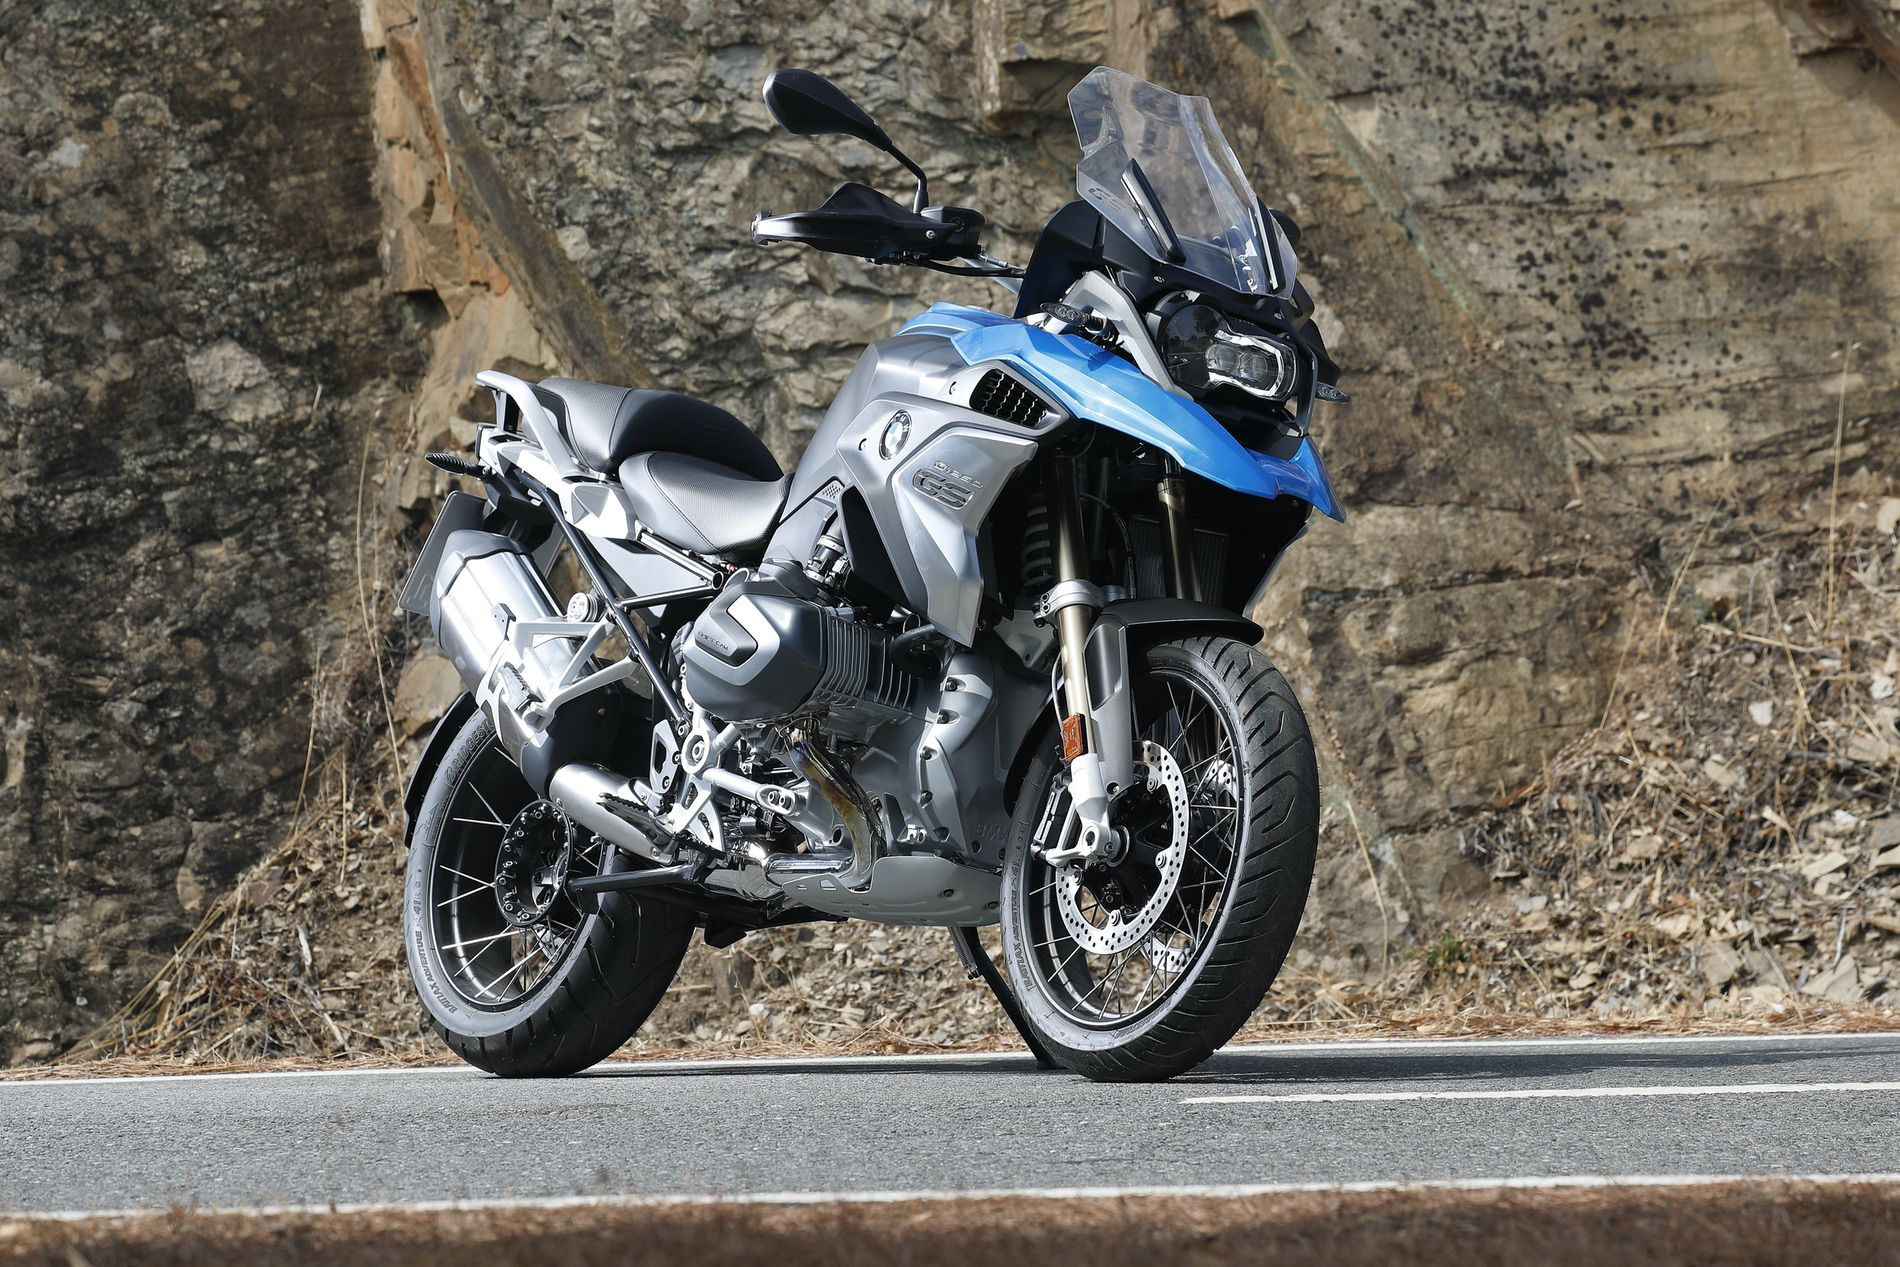 BMW R 1250 GS and BMW R 1250 RT 155